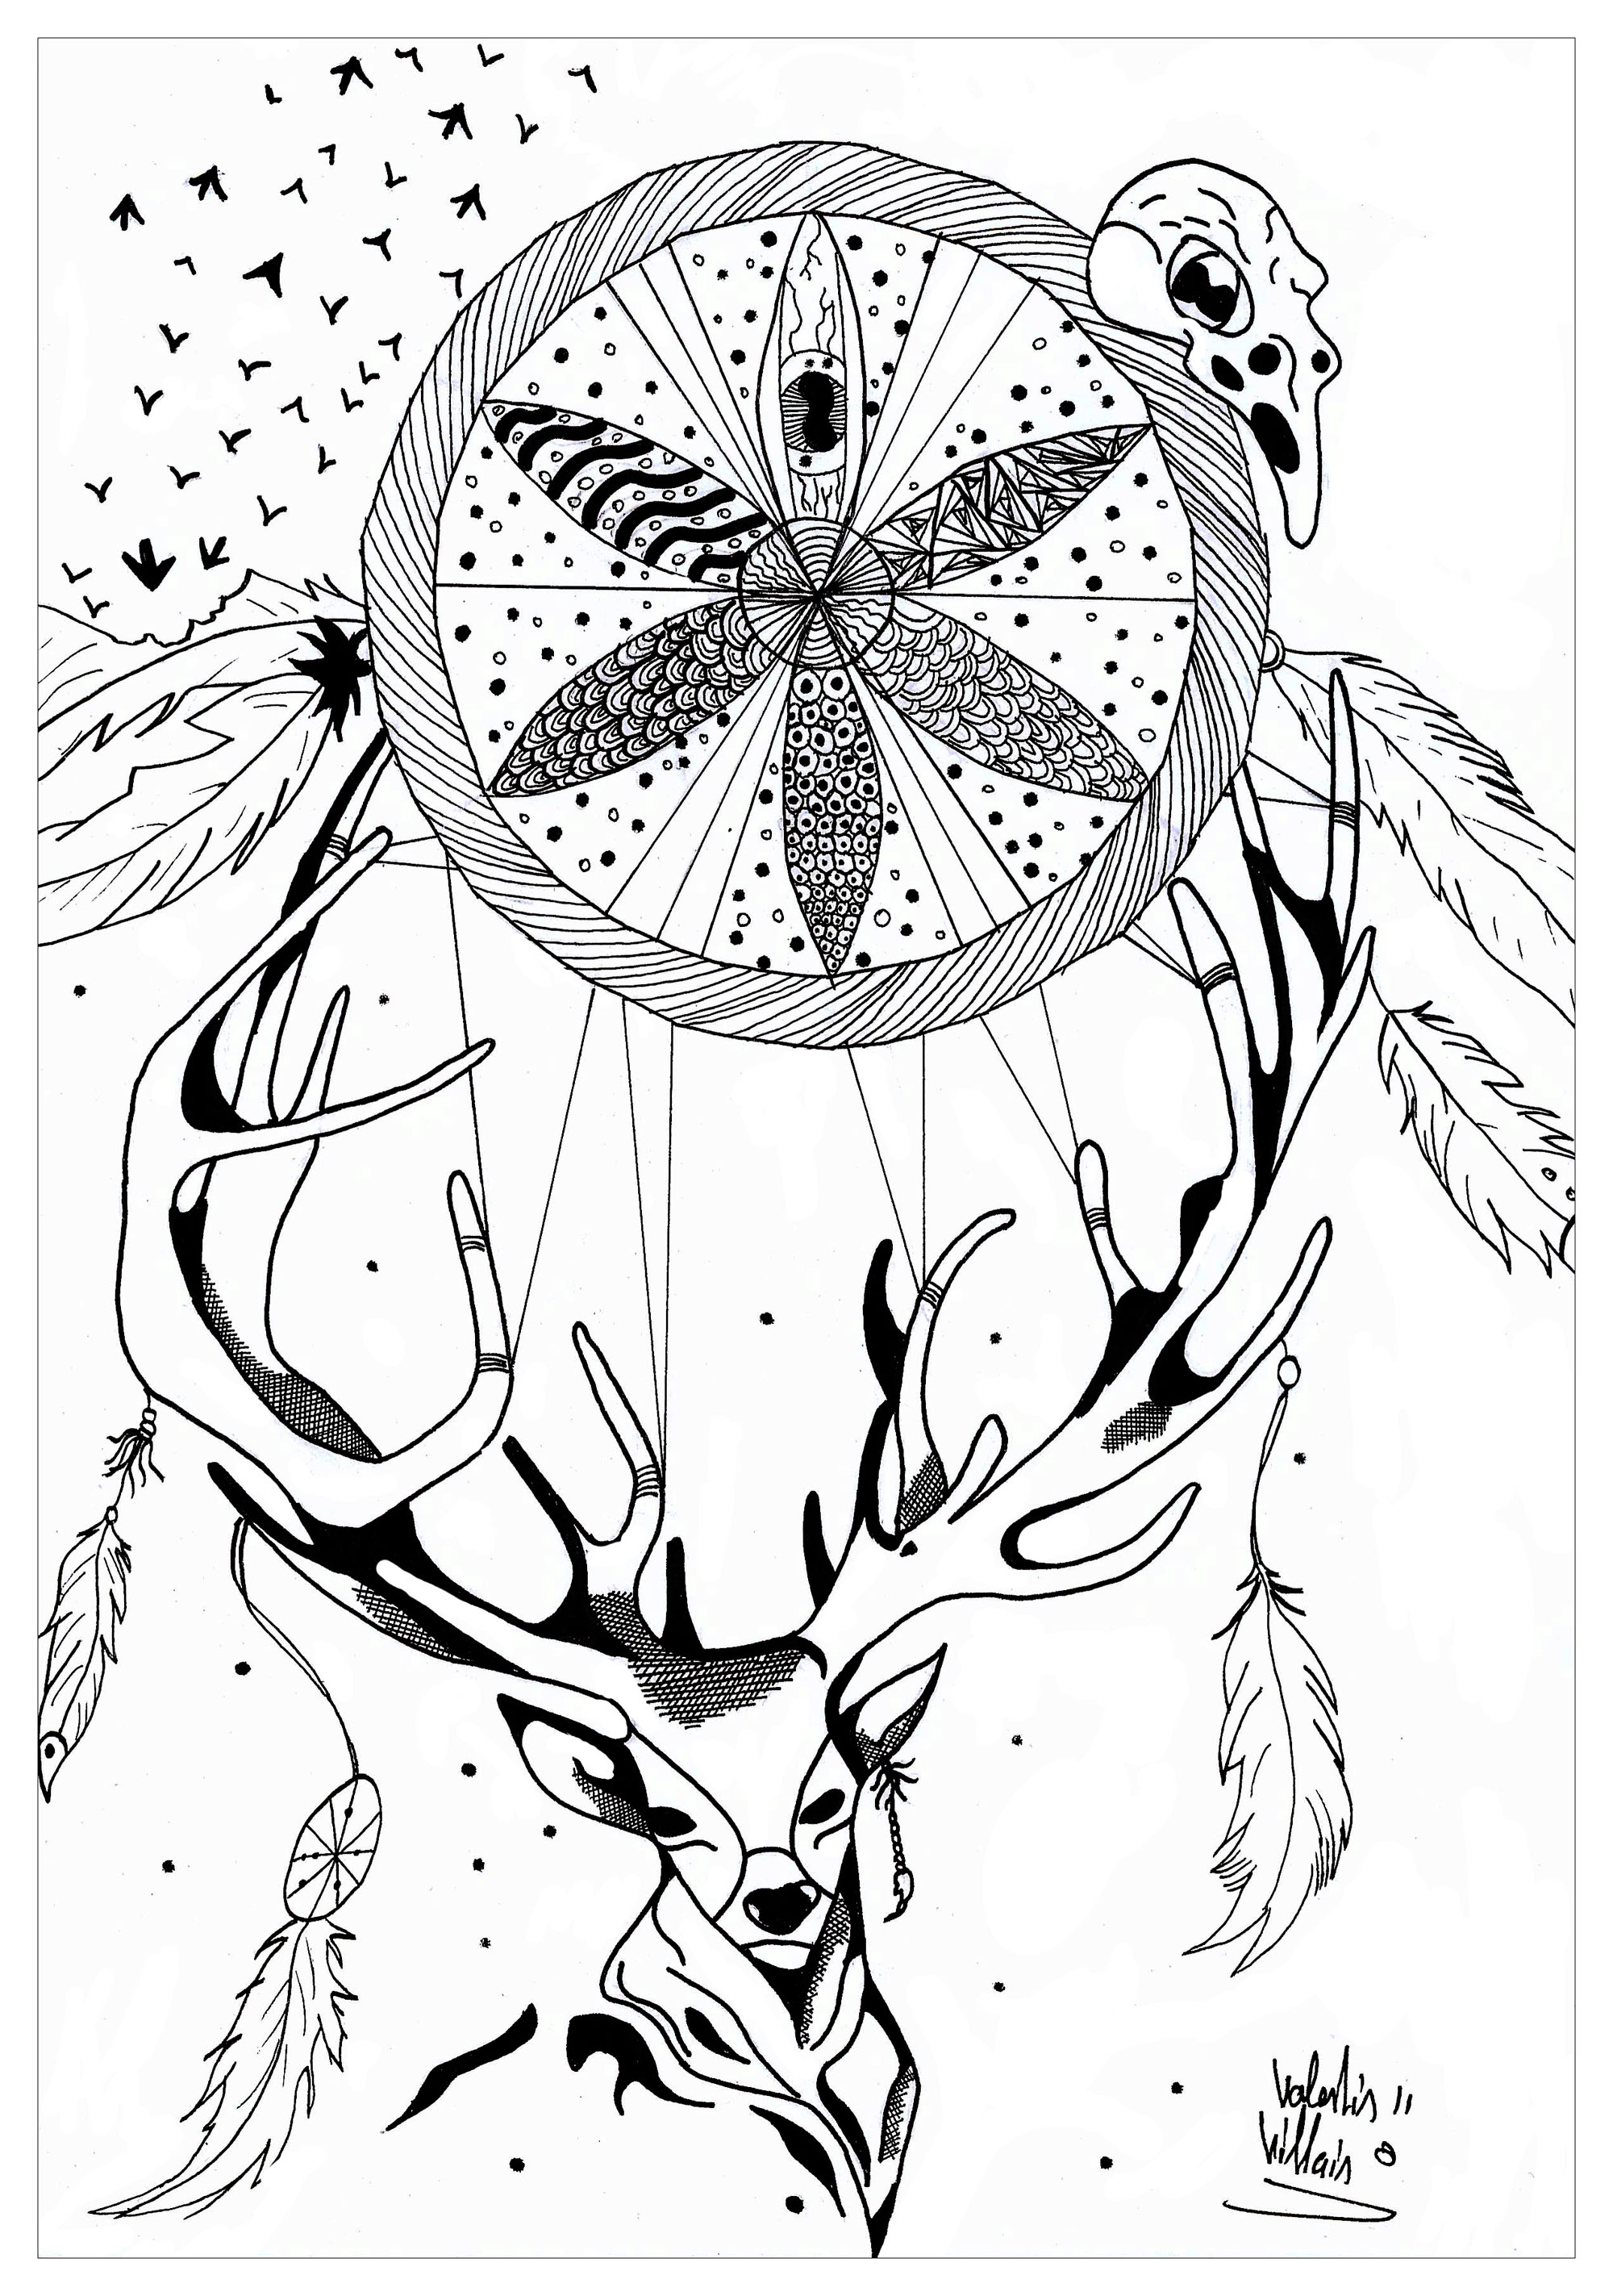 Cerf detante anti stress art th rapie coloriages - Coloriage anti stress pour adulte a imprimer ...